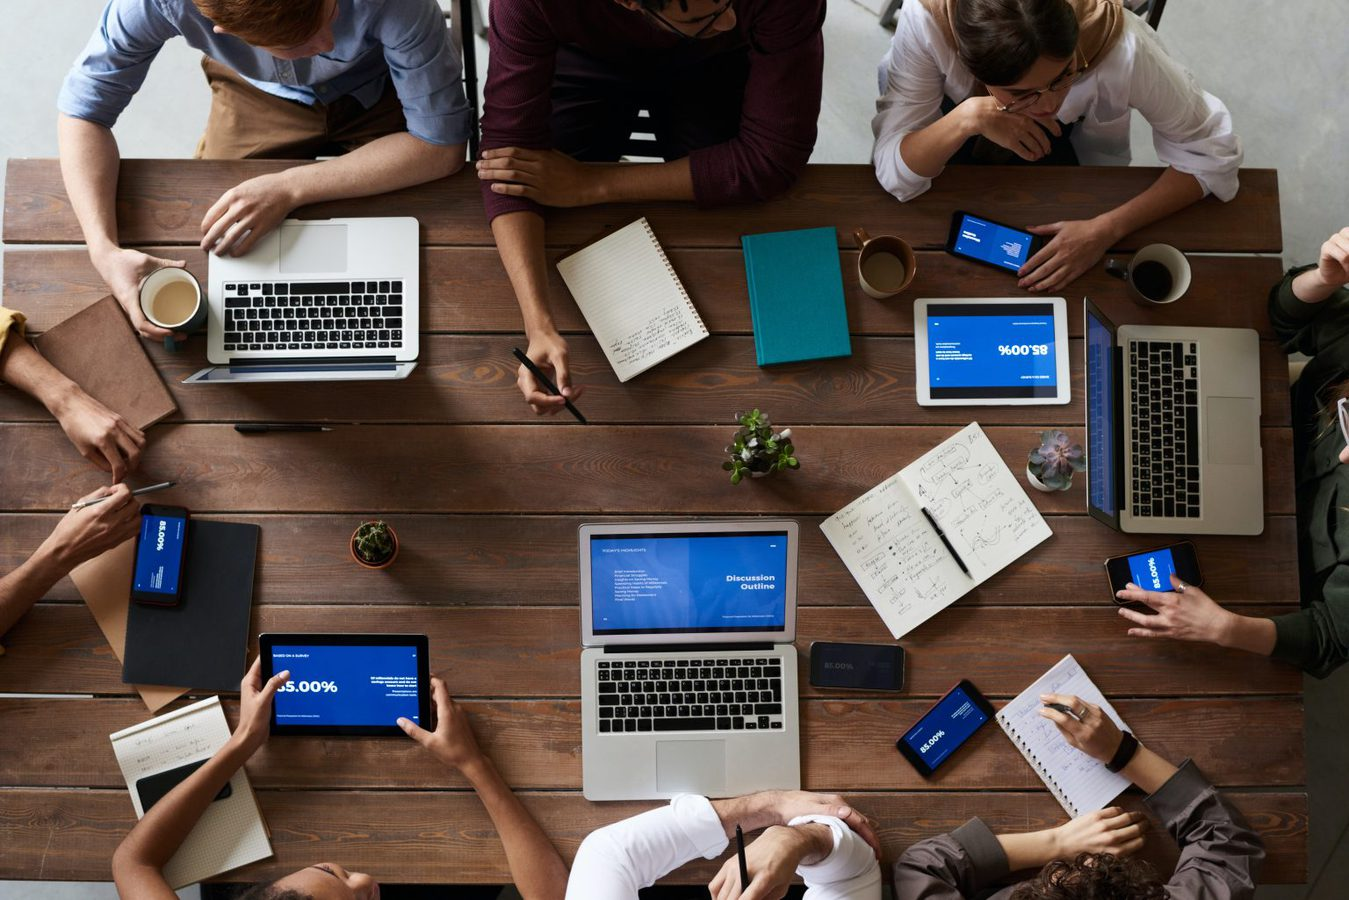 group of people at table with laptops